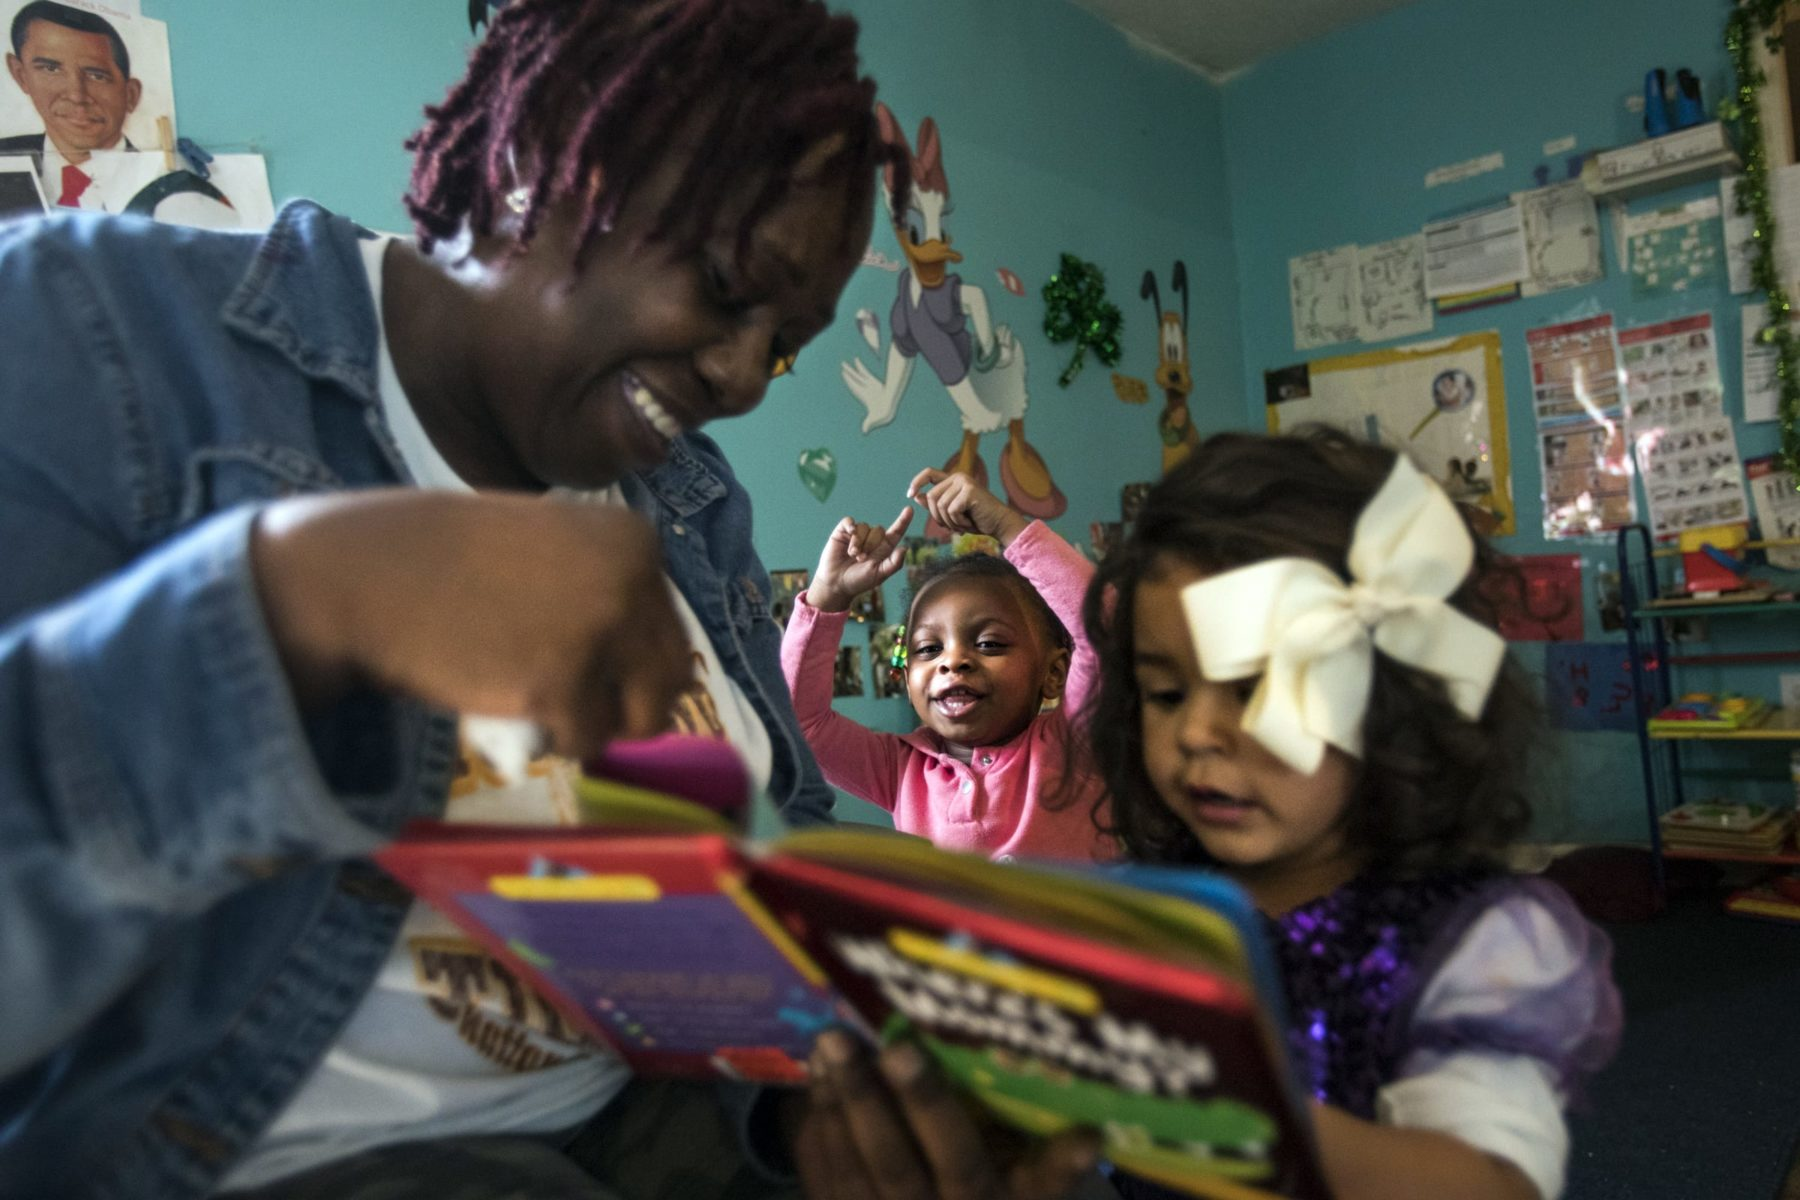 A woman reads a book to two small children.